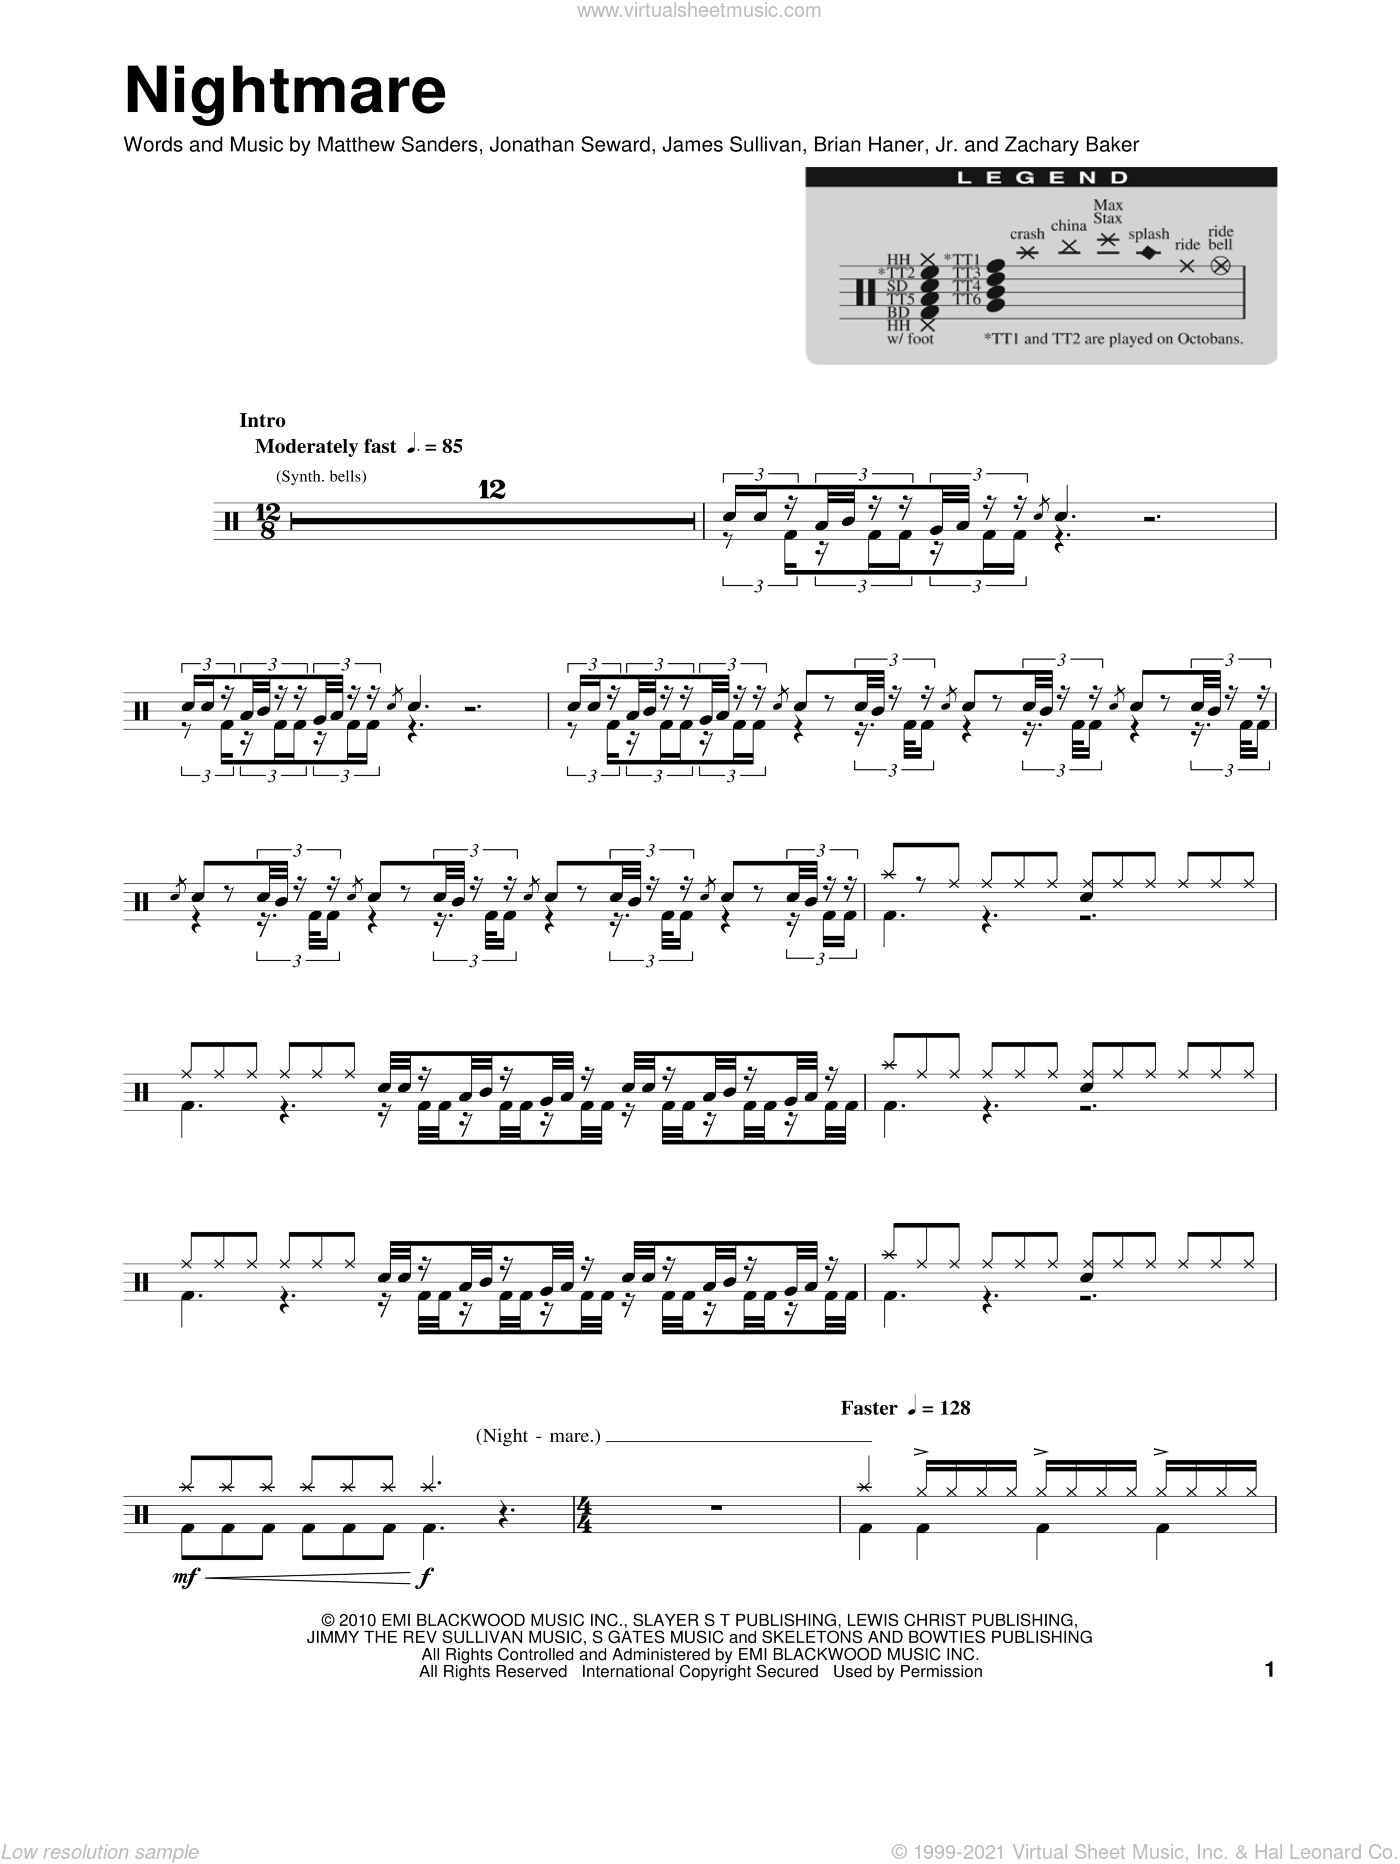 Nightmare sheet music for drums by Avenged Sevenfold, Brian Haner, Jr., James Sullivan, Jonathan Seward, Matthew Sanders and Zachary Baker, intermediate. Score Image Preview.